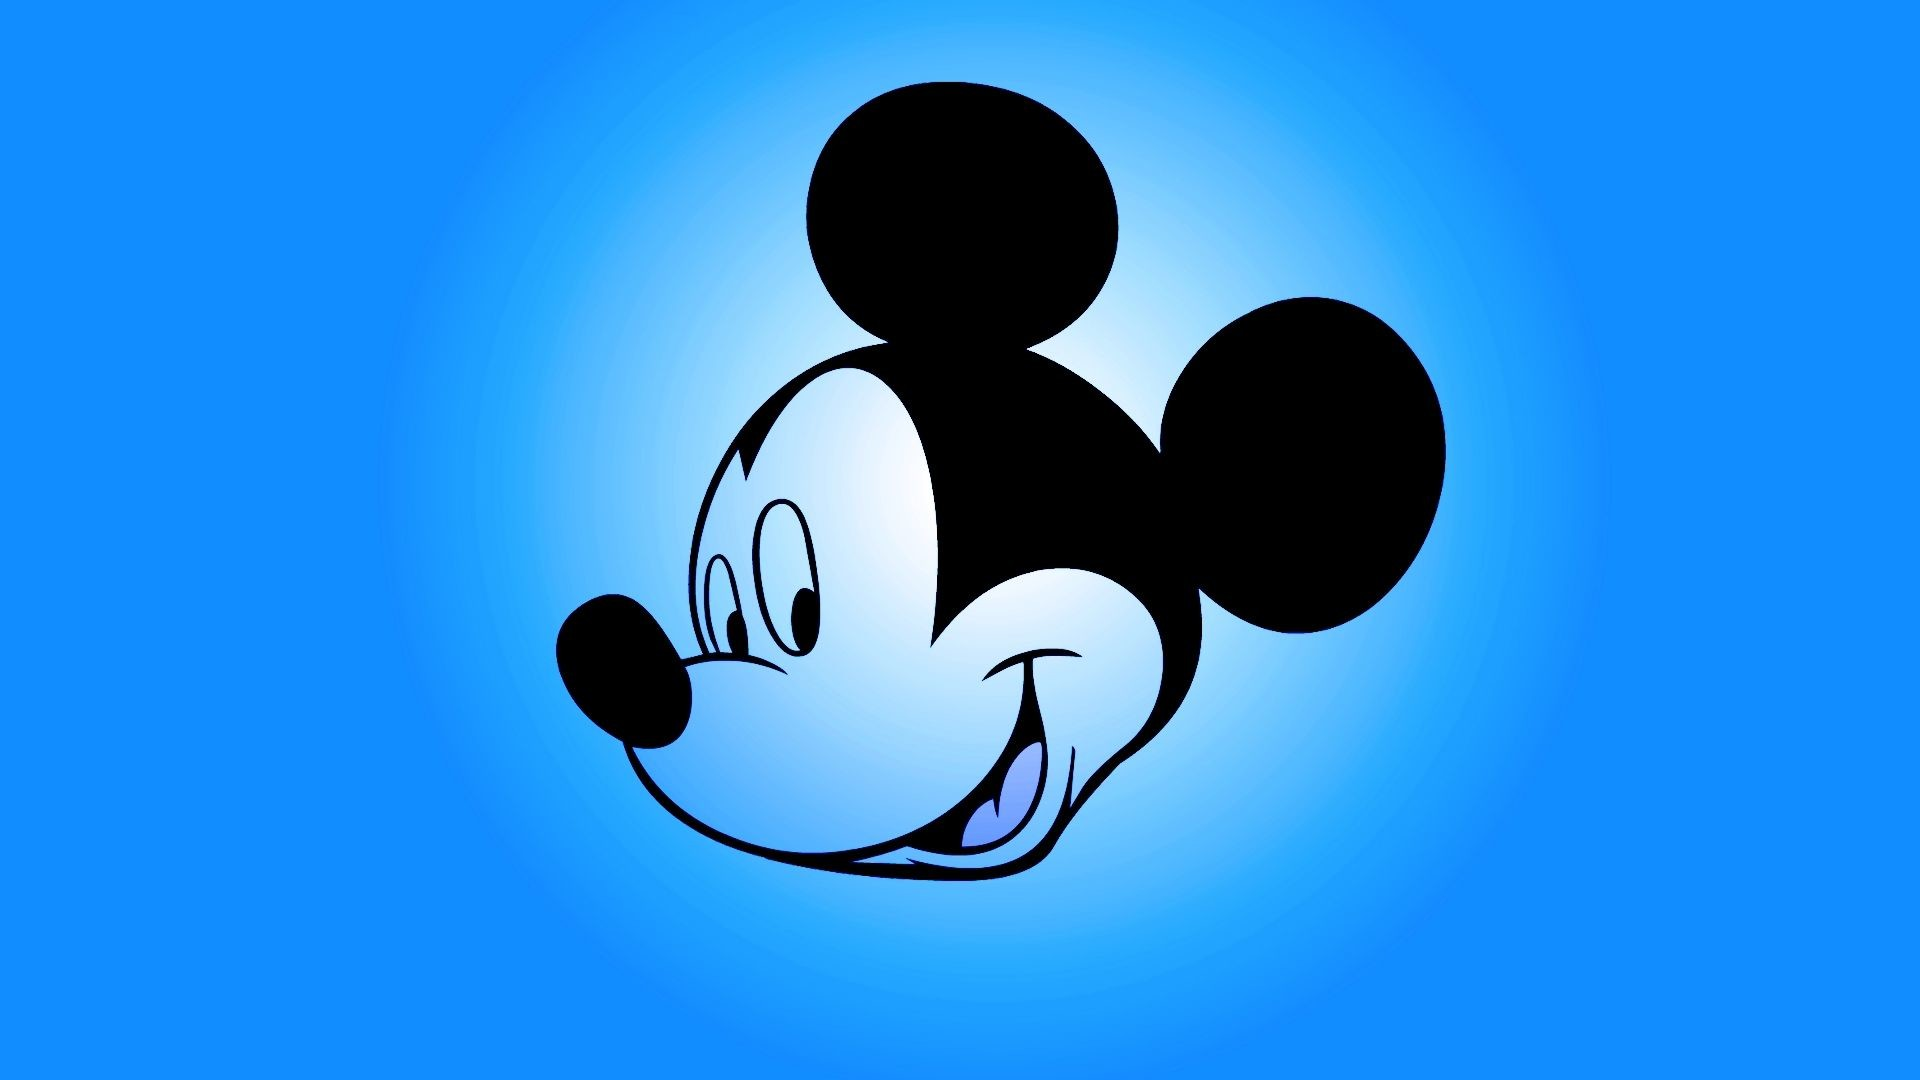 Res: 1920x1080, Mickey Mouse Wallpapers Black And White Wallpapers HD